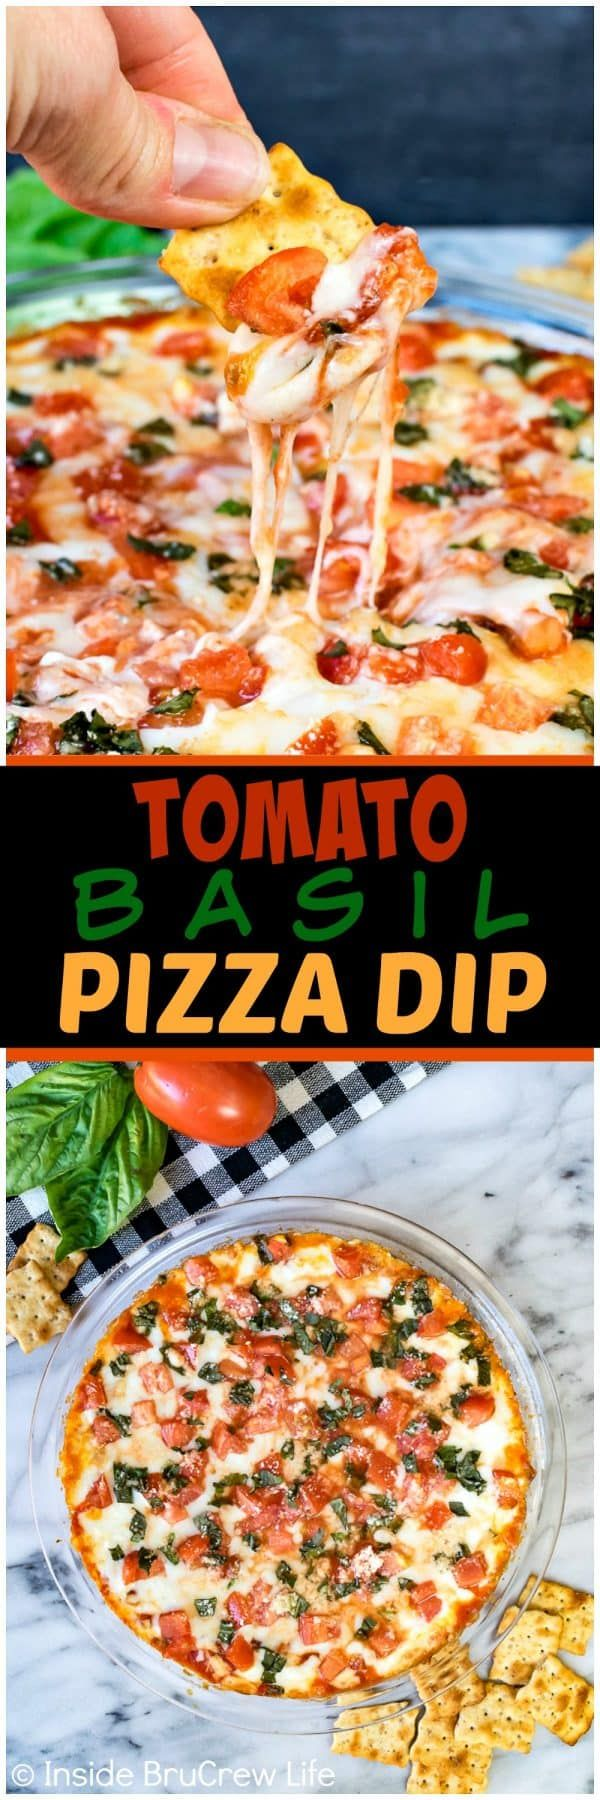 Tomato Basil Pizza Dip - gooey melted cheese loaded with fresh tomatoes and basil makes a delicious dip that will disappear in minutes. Great recipe for after school snacks or game day parties! ~ Inside BruCrew Life